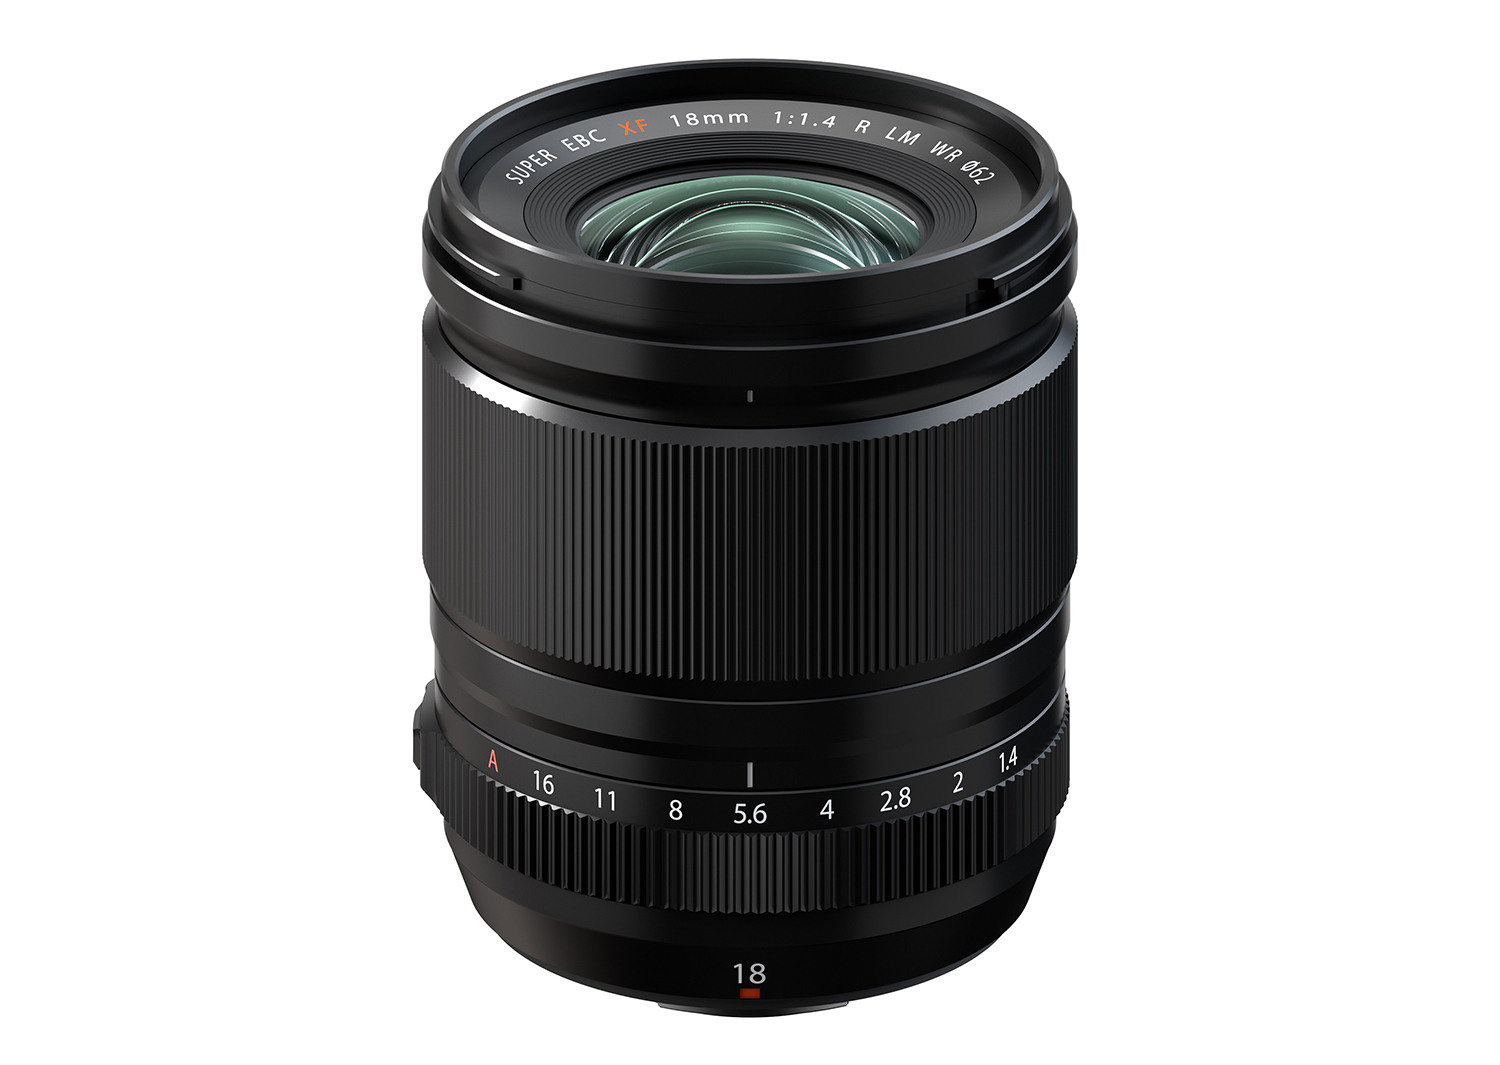 [Product Images]XF18mmF1.4 R LM WR